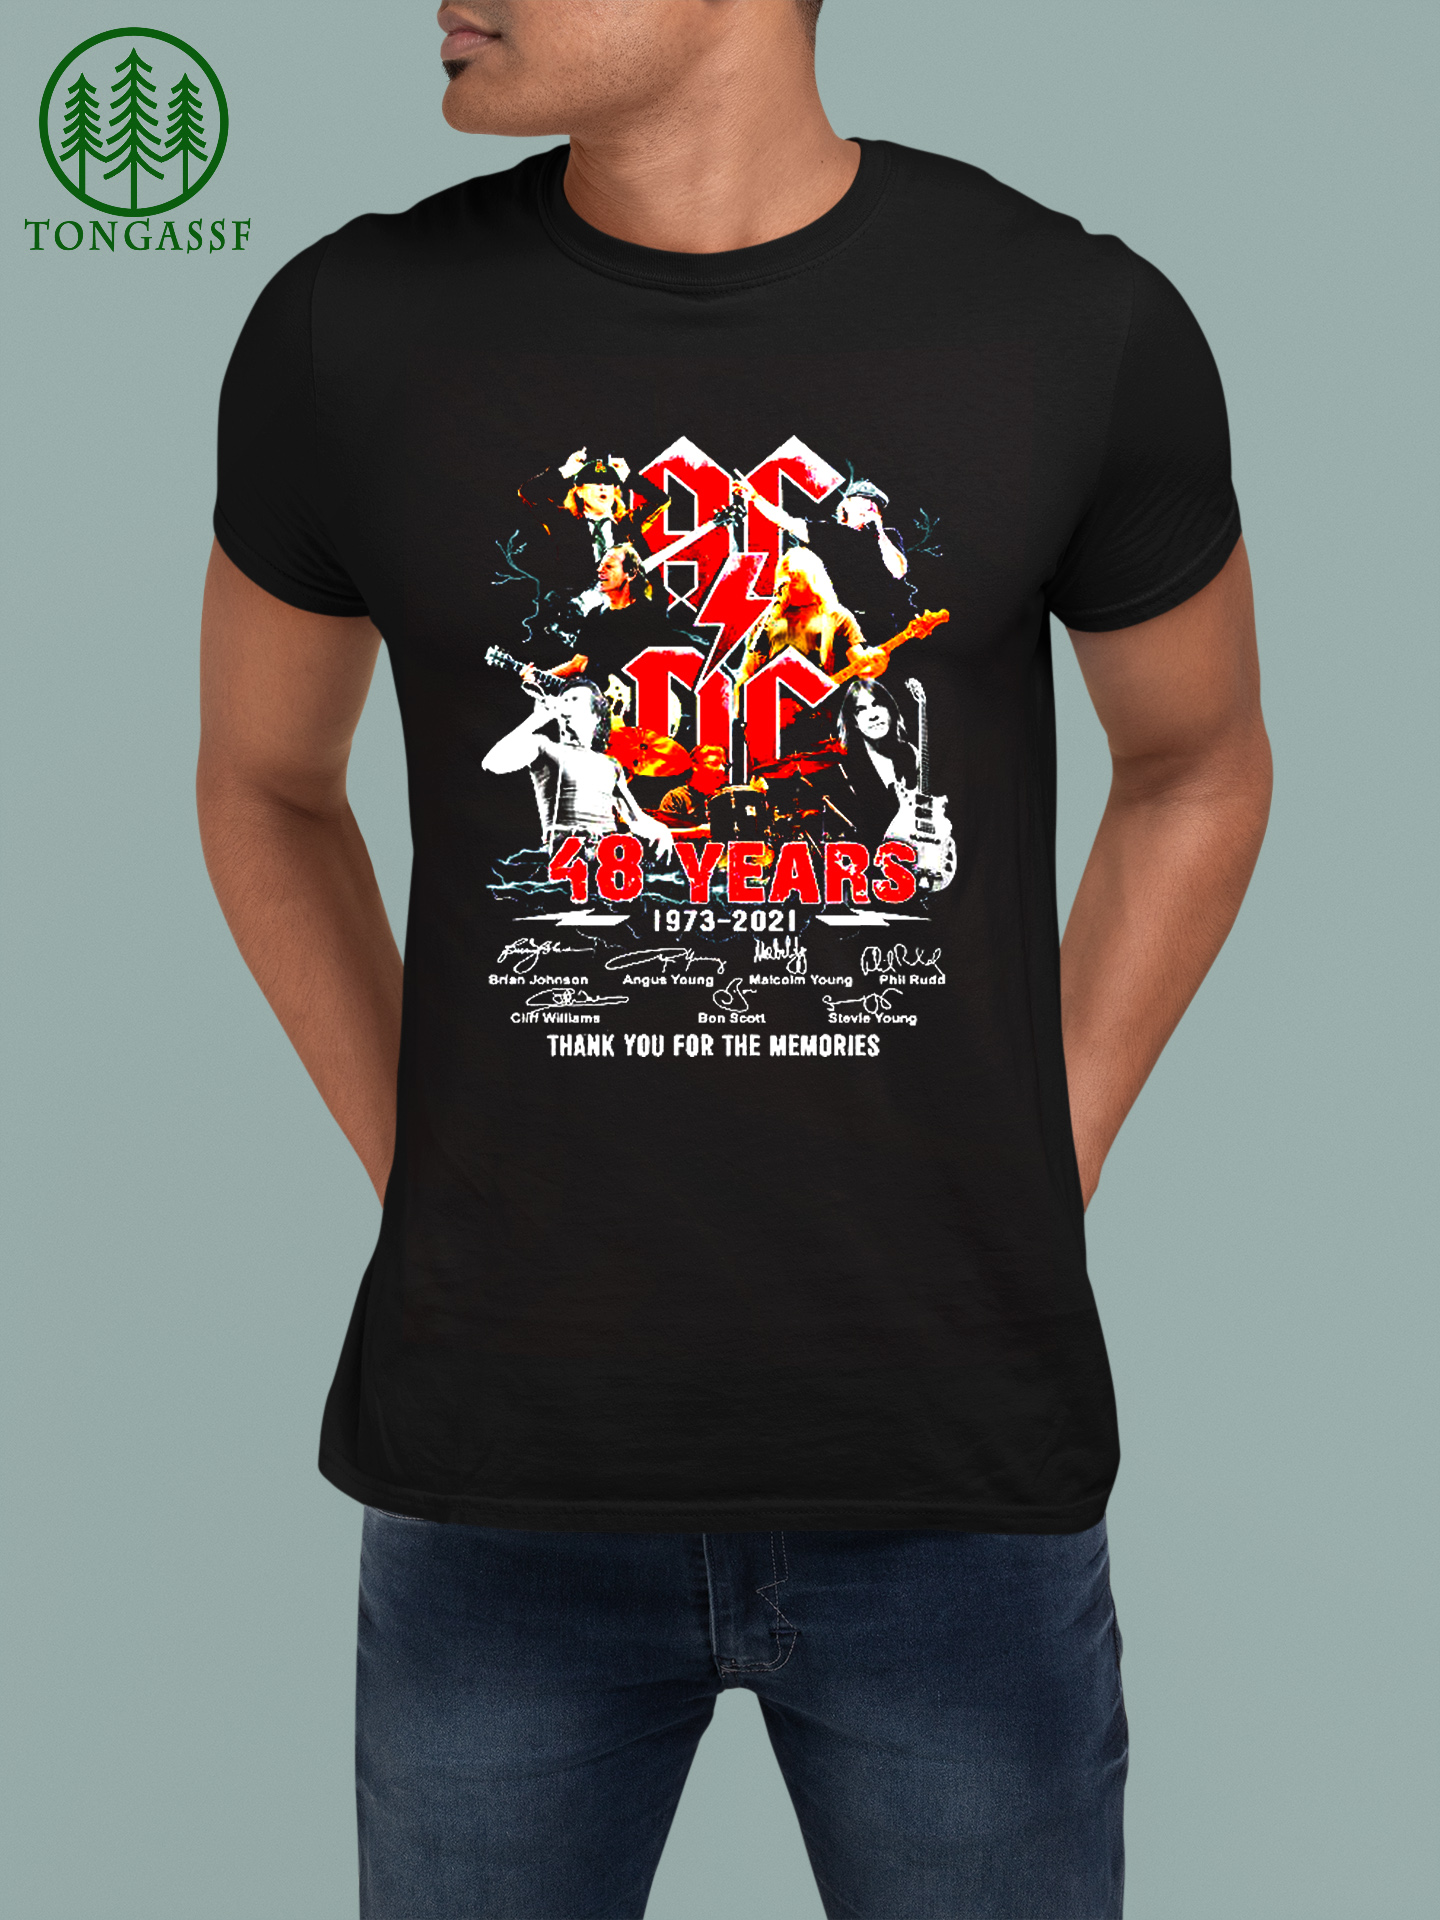 ACDC 48 years 1973 2021 thank you for the memories t shirt